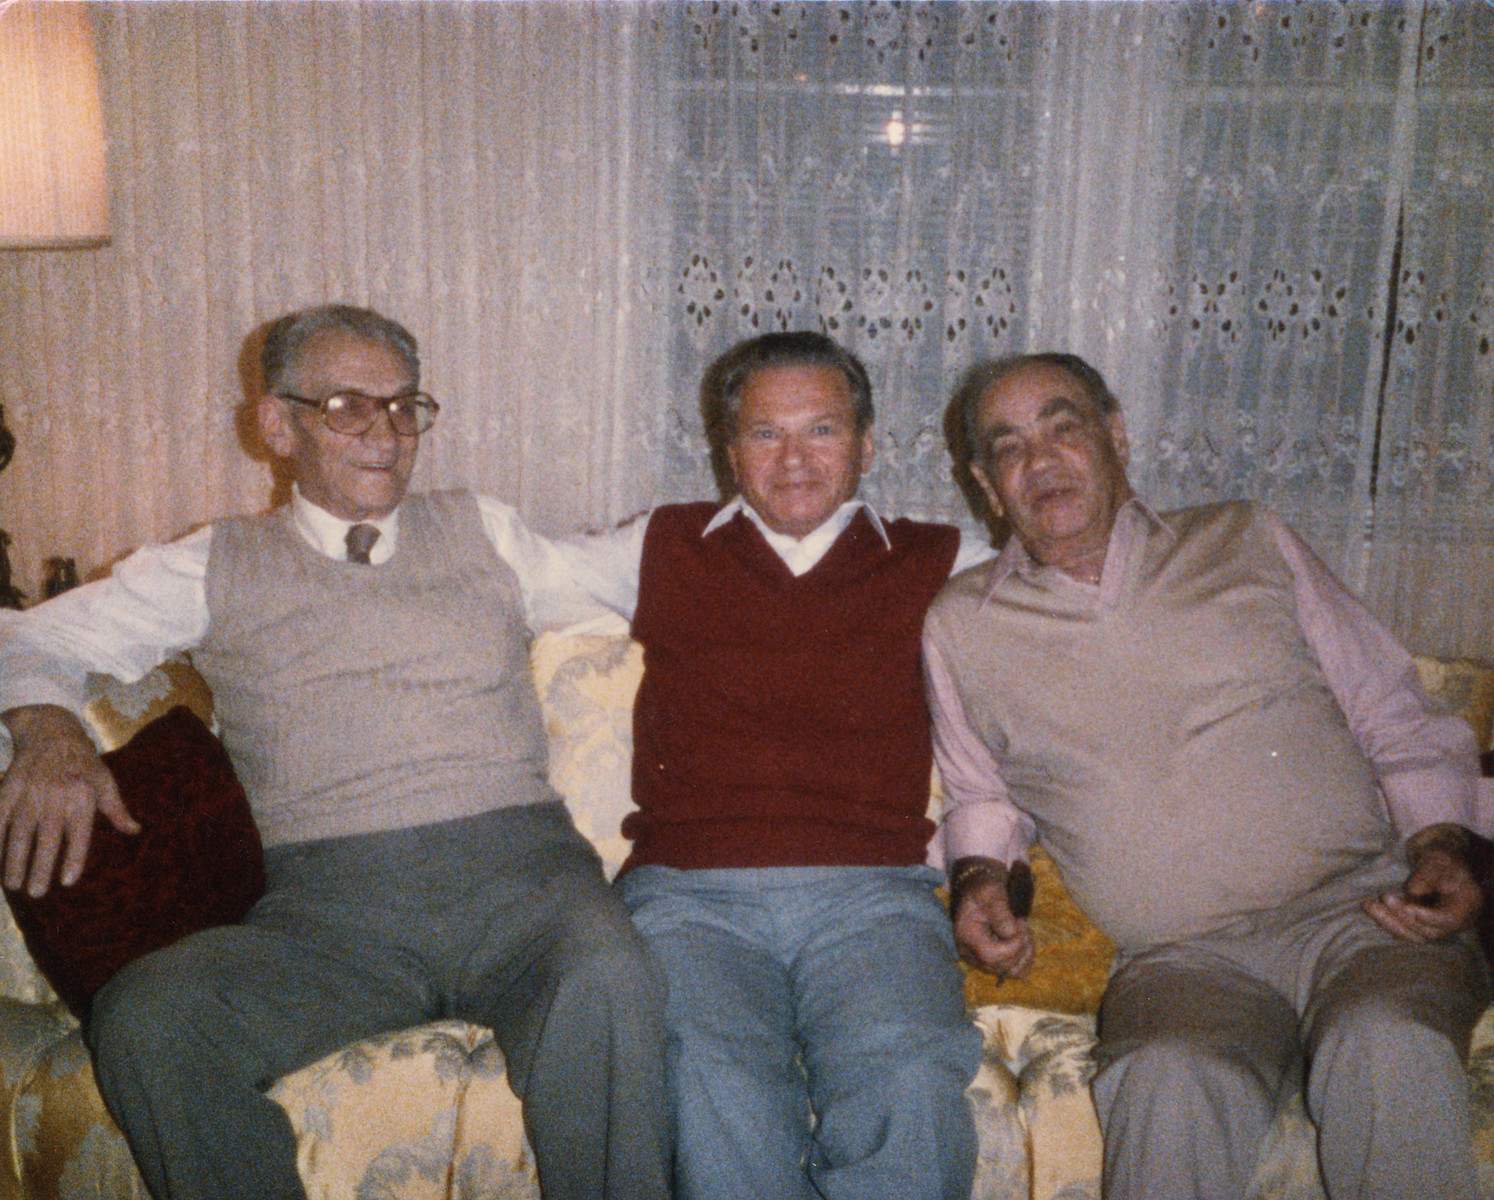 The Bielski brothers pose on a couch with a friend.  Tuvia Bielski is on the left and Zus Bielski is on the right.